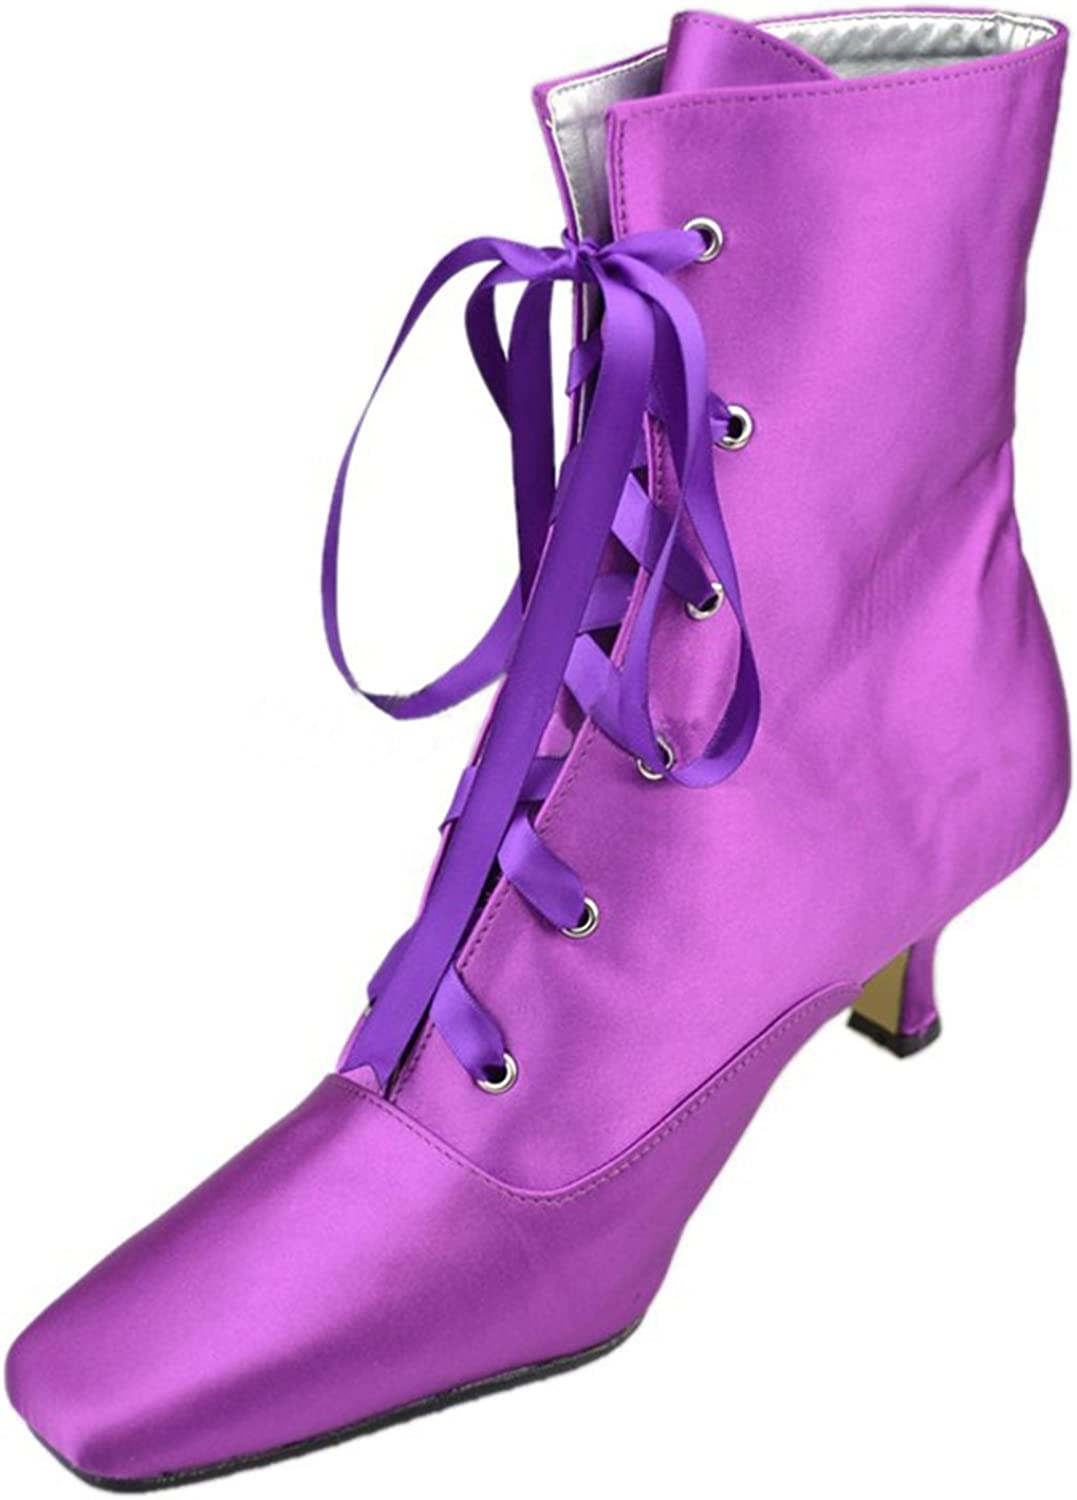 Minishion Girls Womens Lace-up Low Heel Satin Bridal Wedding Ankle Boost Dress Boots